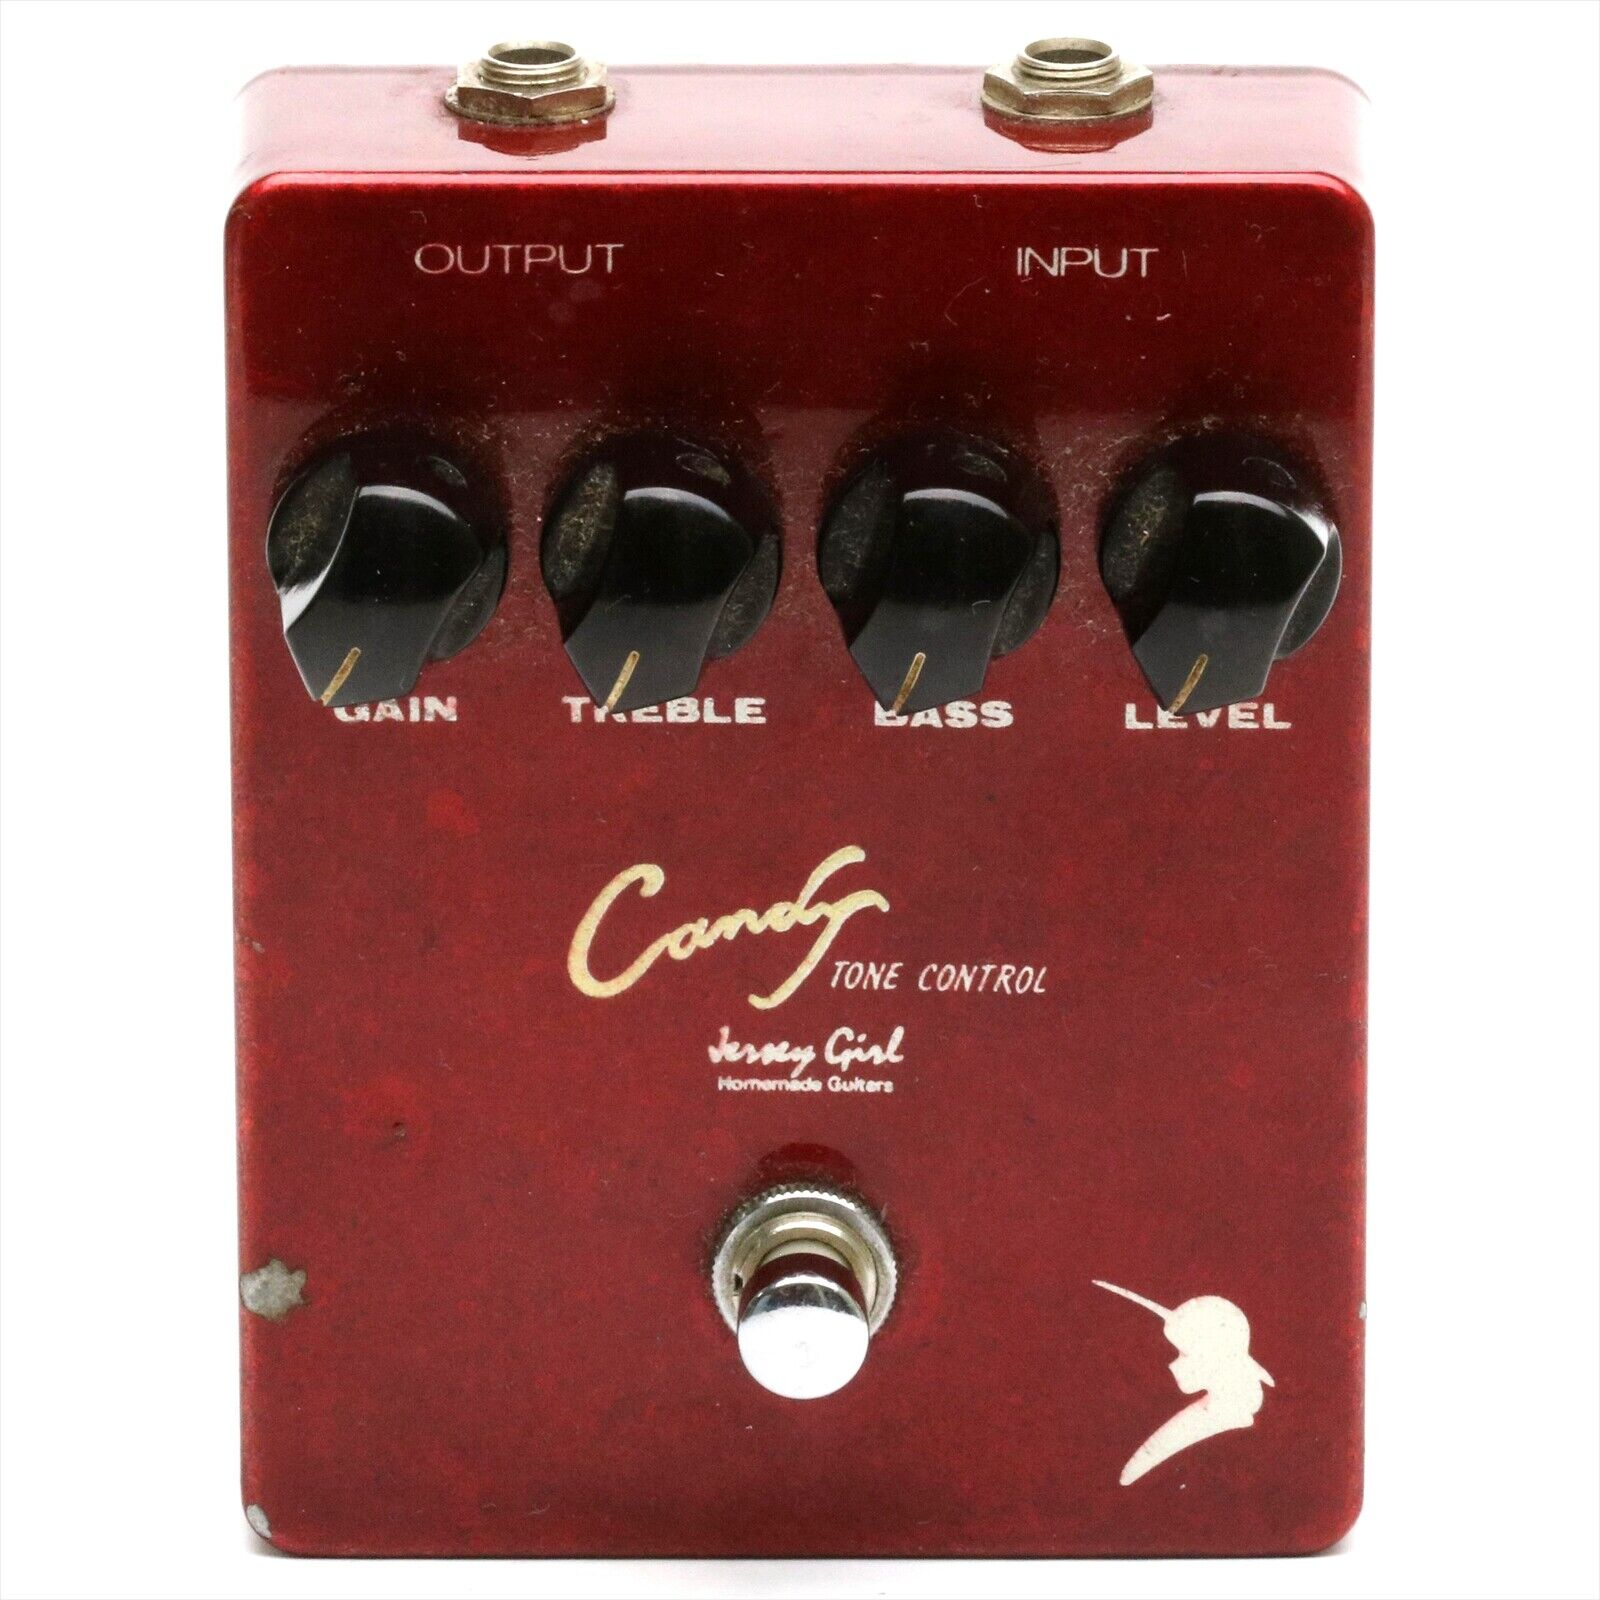 Jersey Girl Homemade Guitars Candy Guitar Effect Pedal